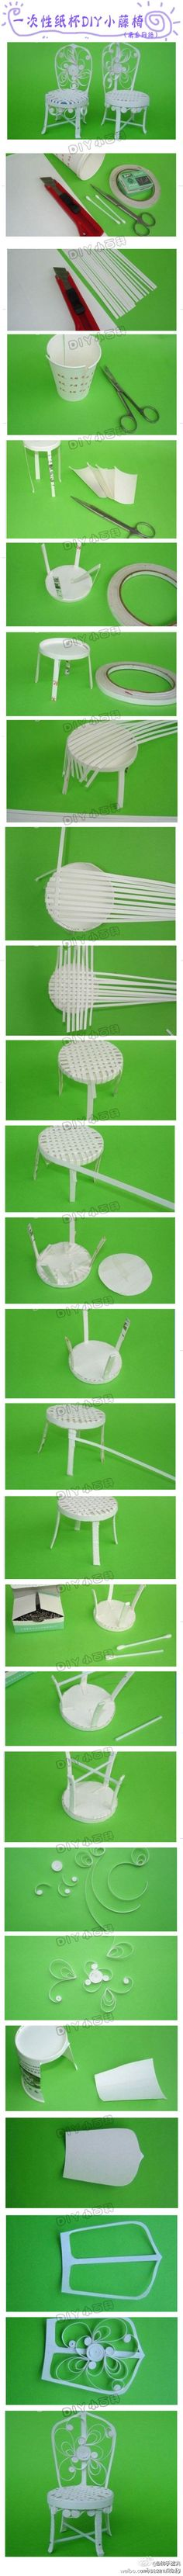 Dollhouse ice cream chairs - tutorial